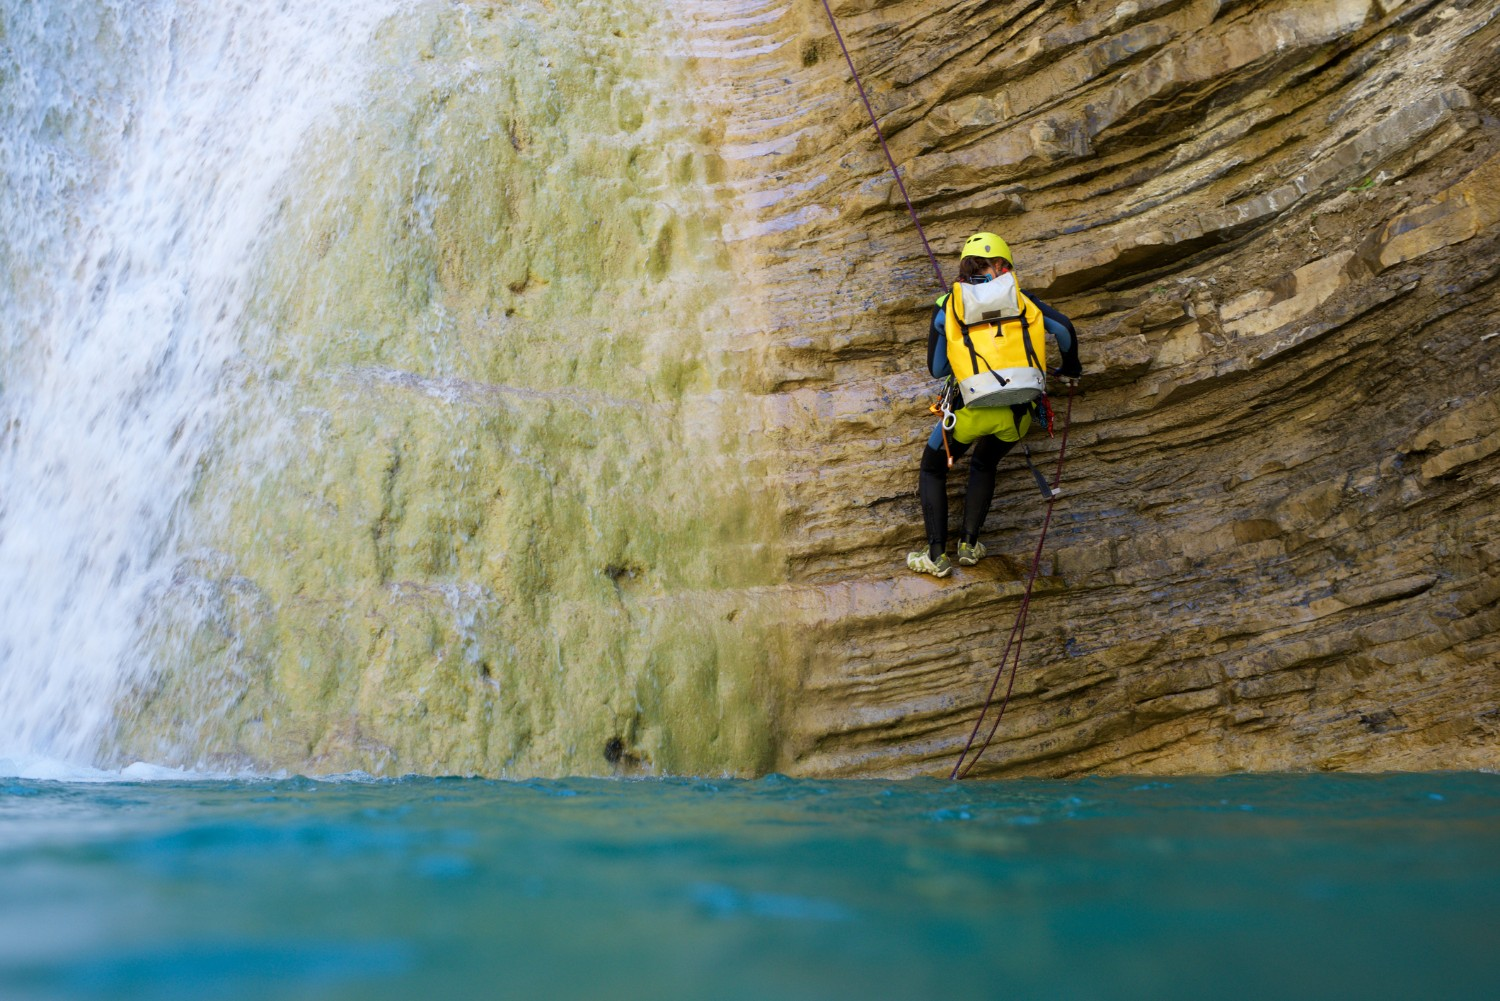 Person scaling a canyon wall above water